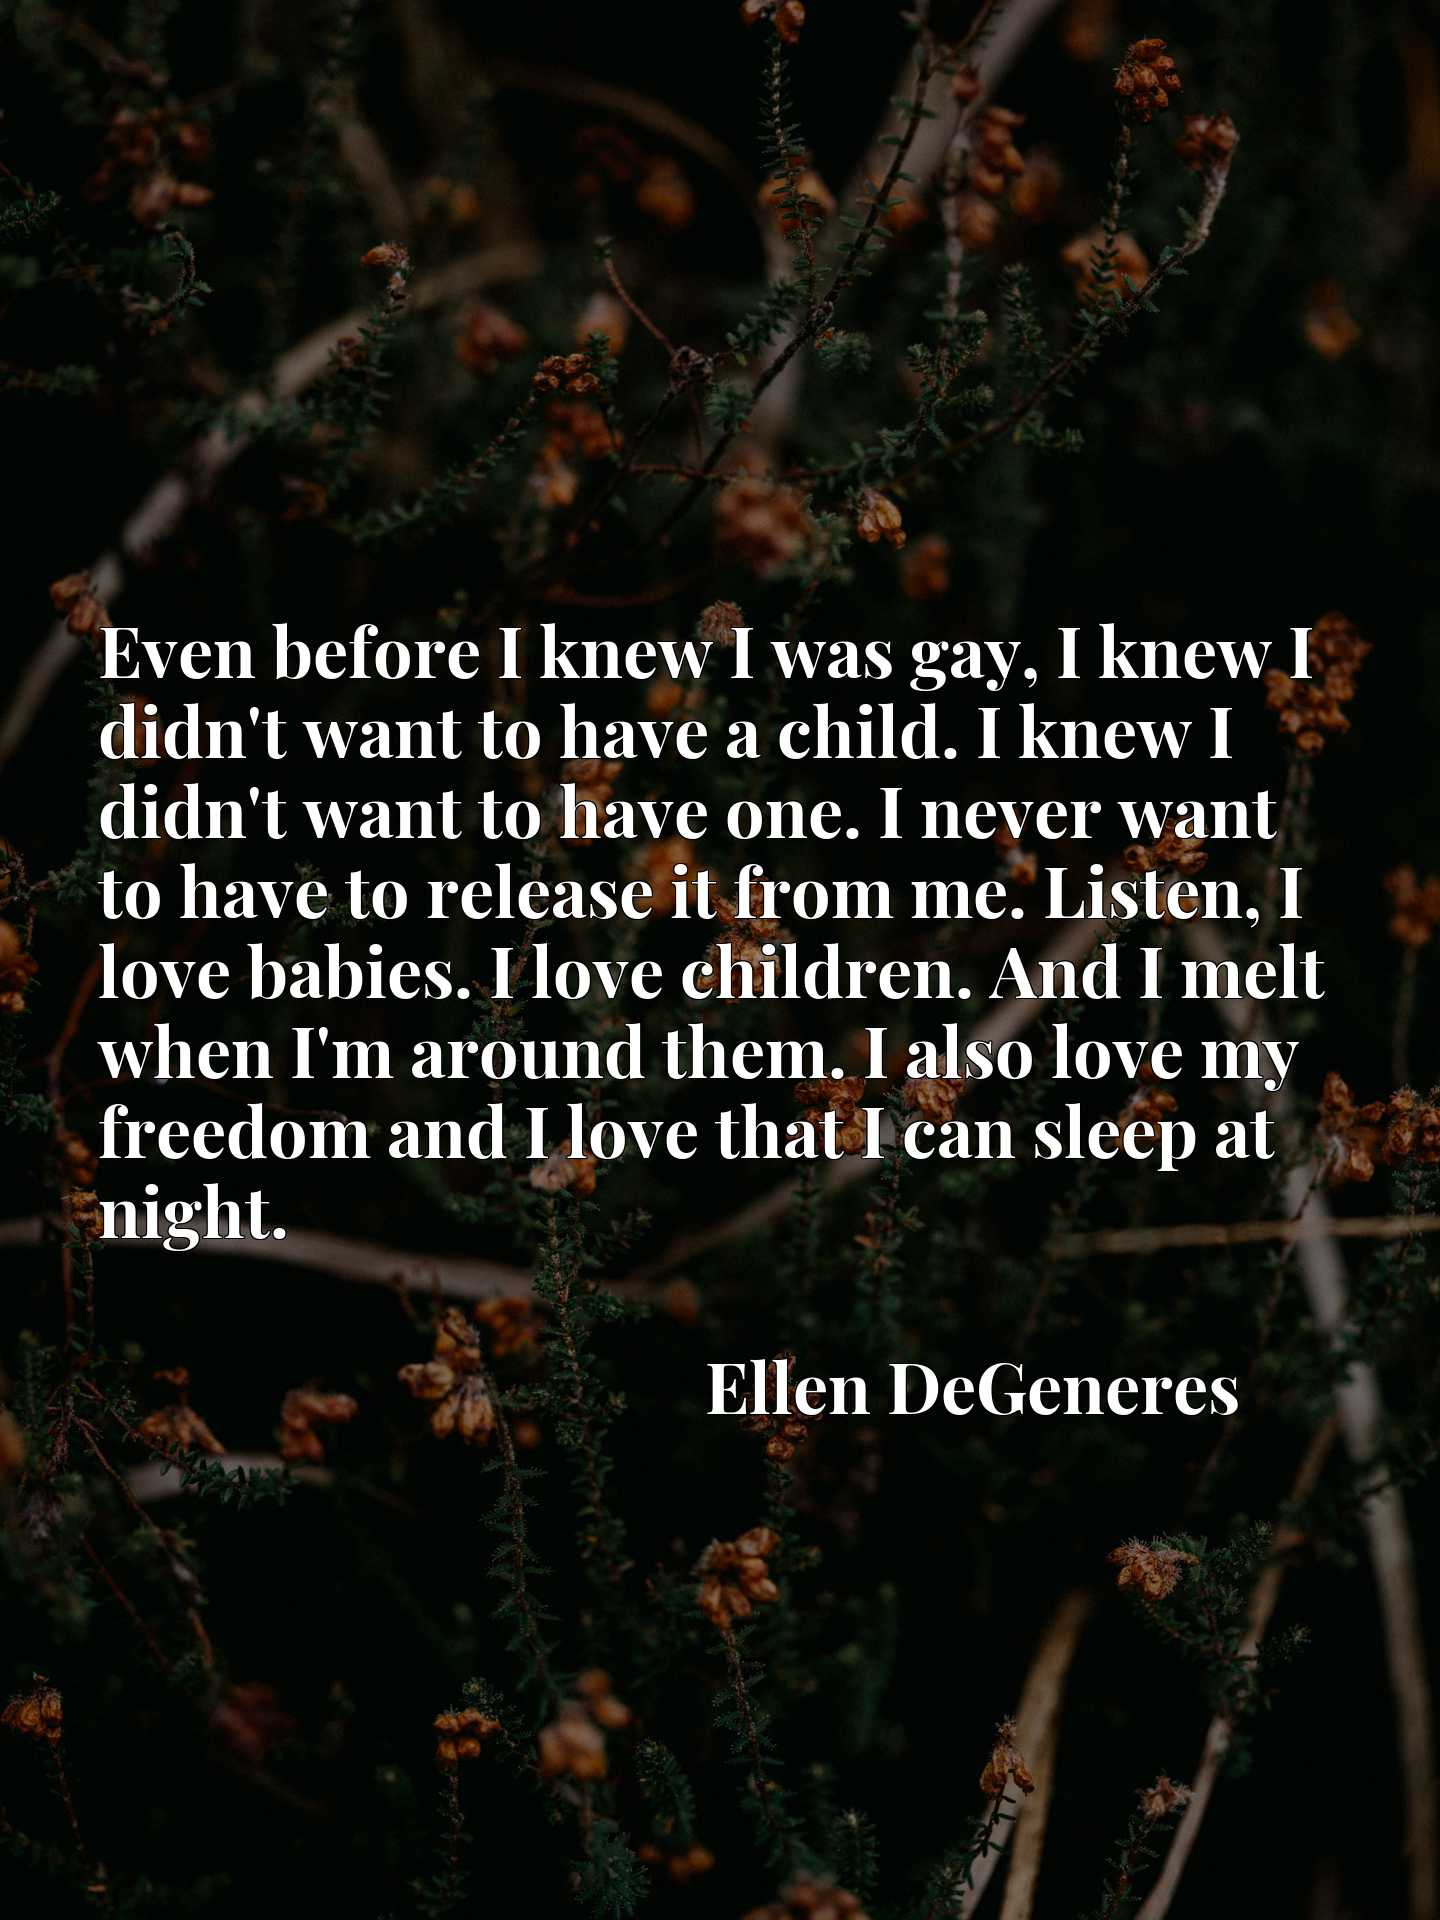 Even before I knew I was gay, I knew I didn't want to have a child. I knew I didn't want to have one. I never want to have to release it from me. Listen, I love babies. I love children. And I melt when I'm around them. I also love my freedom and I love that I can sleep at night.